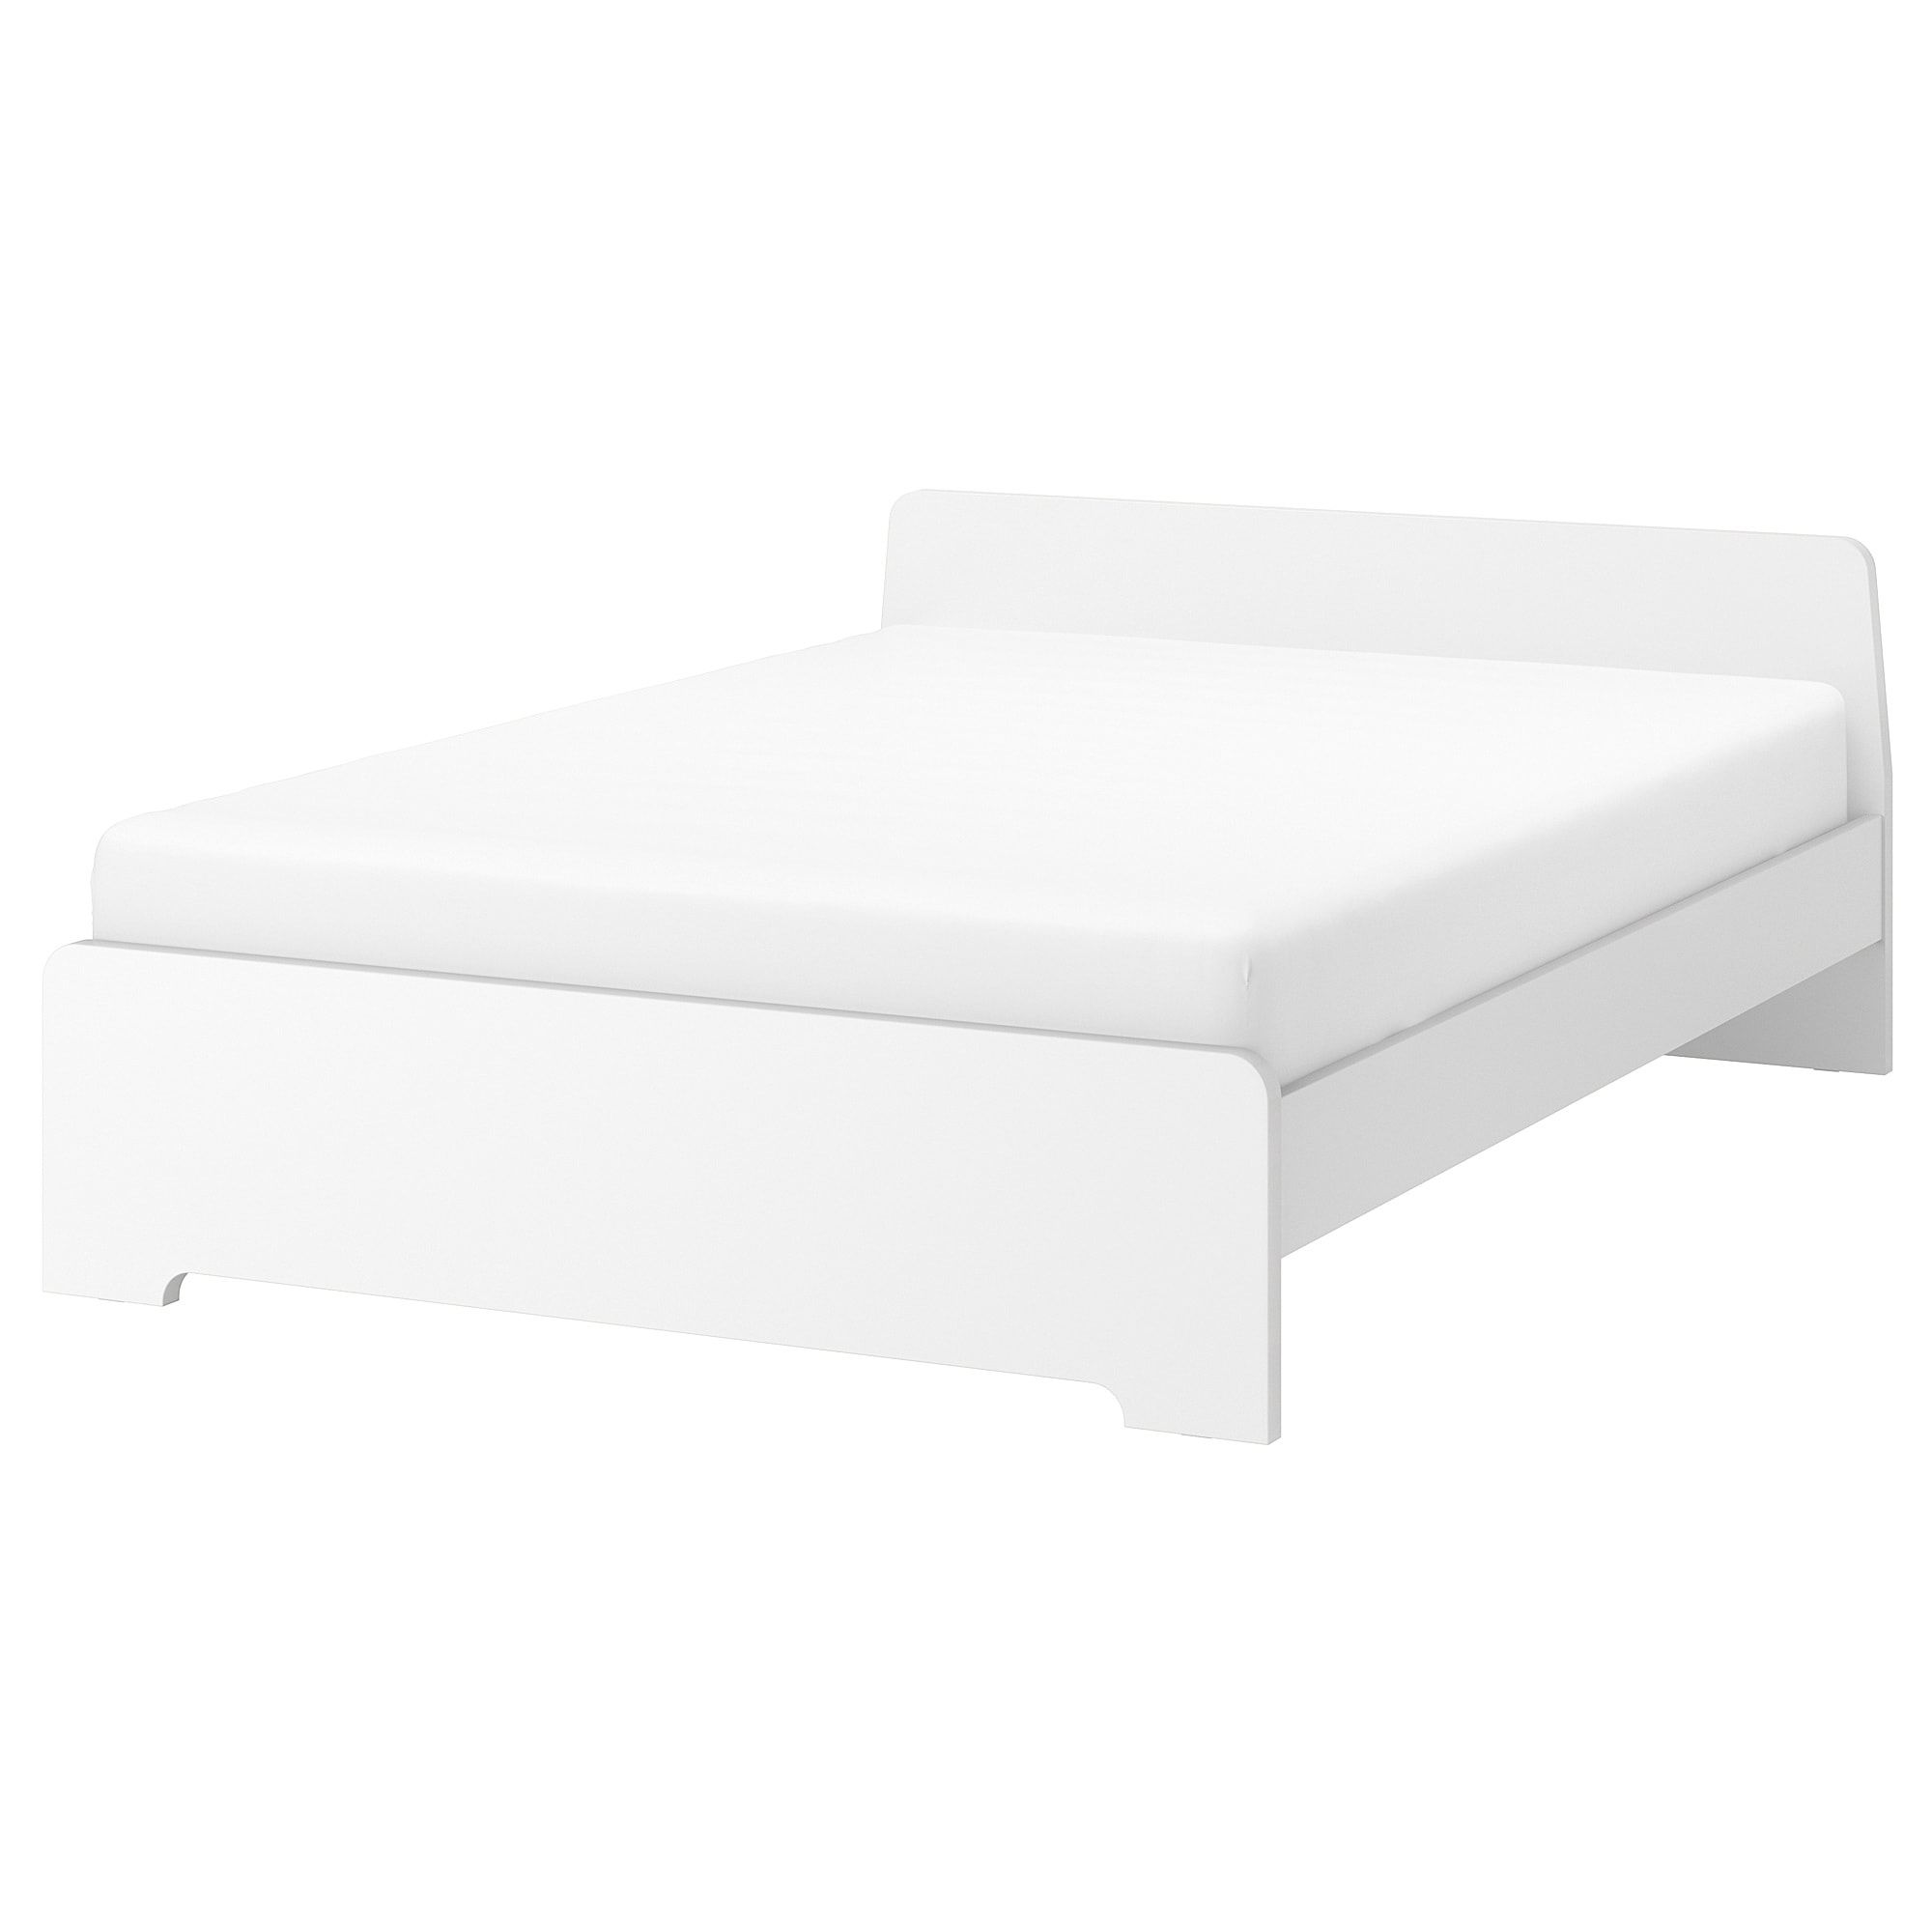 Askvoll Bed Frame White Luroy Queen Ikea Bed Frame With Storage Malm Bed Frame Bed Frame